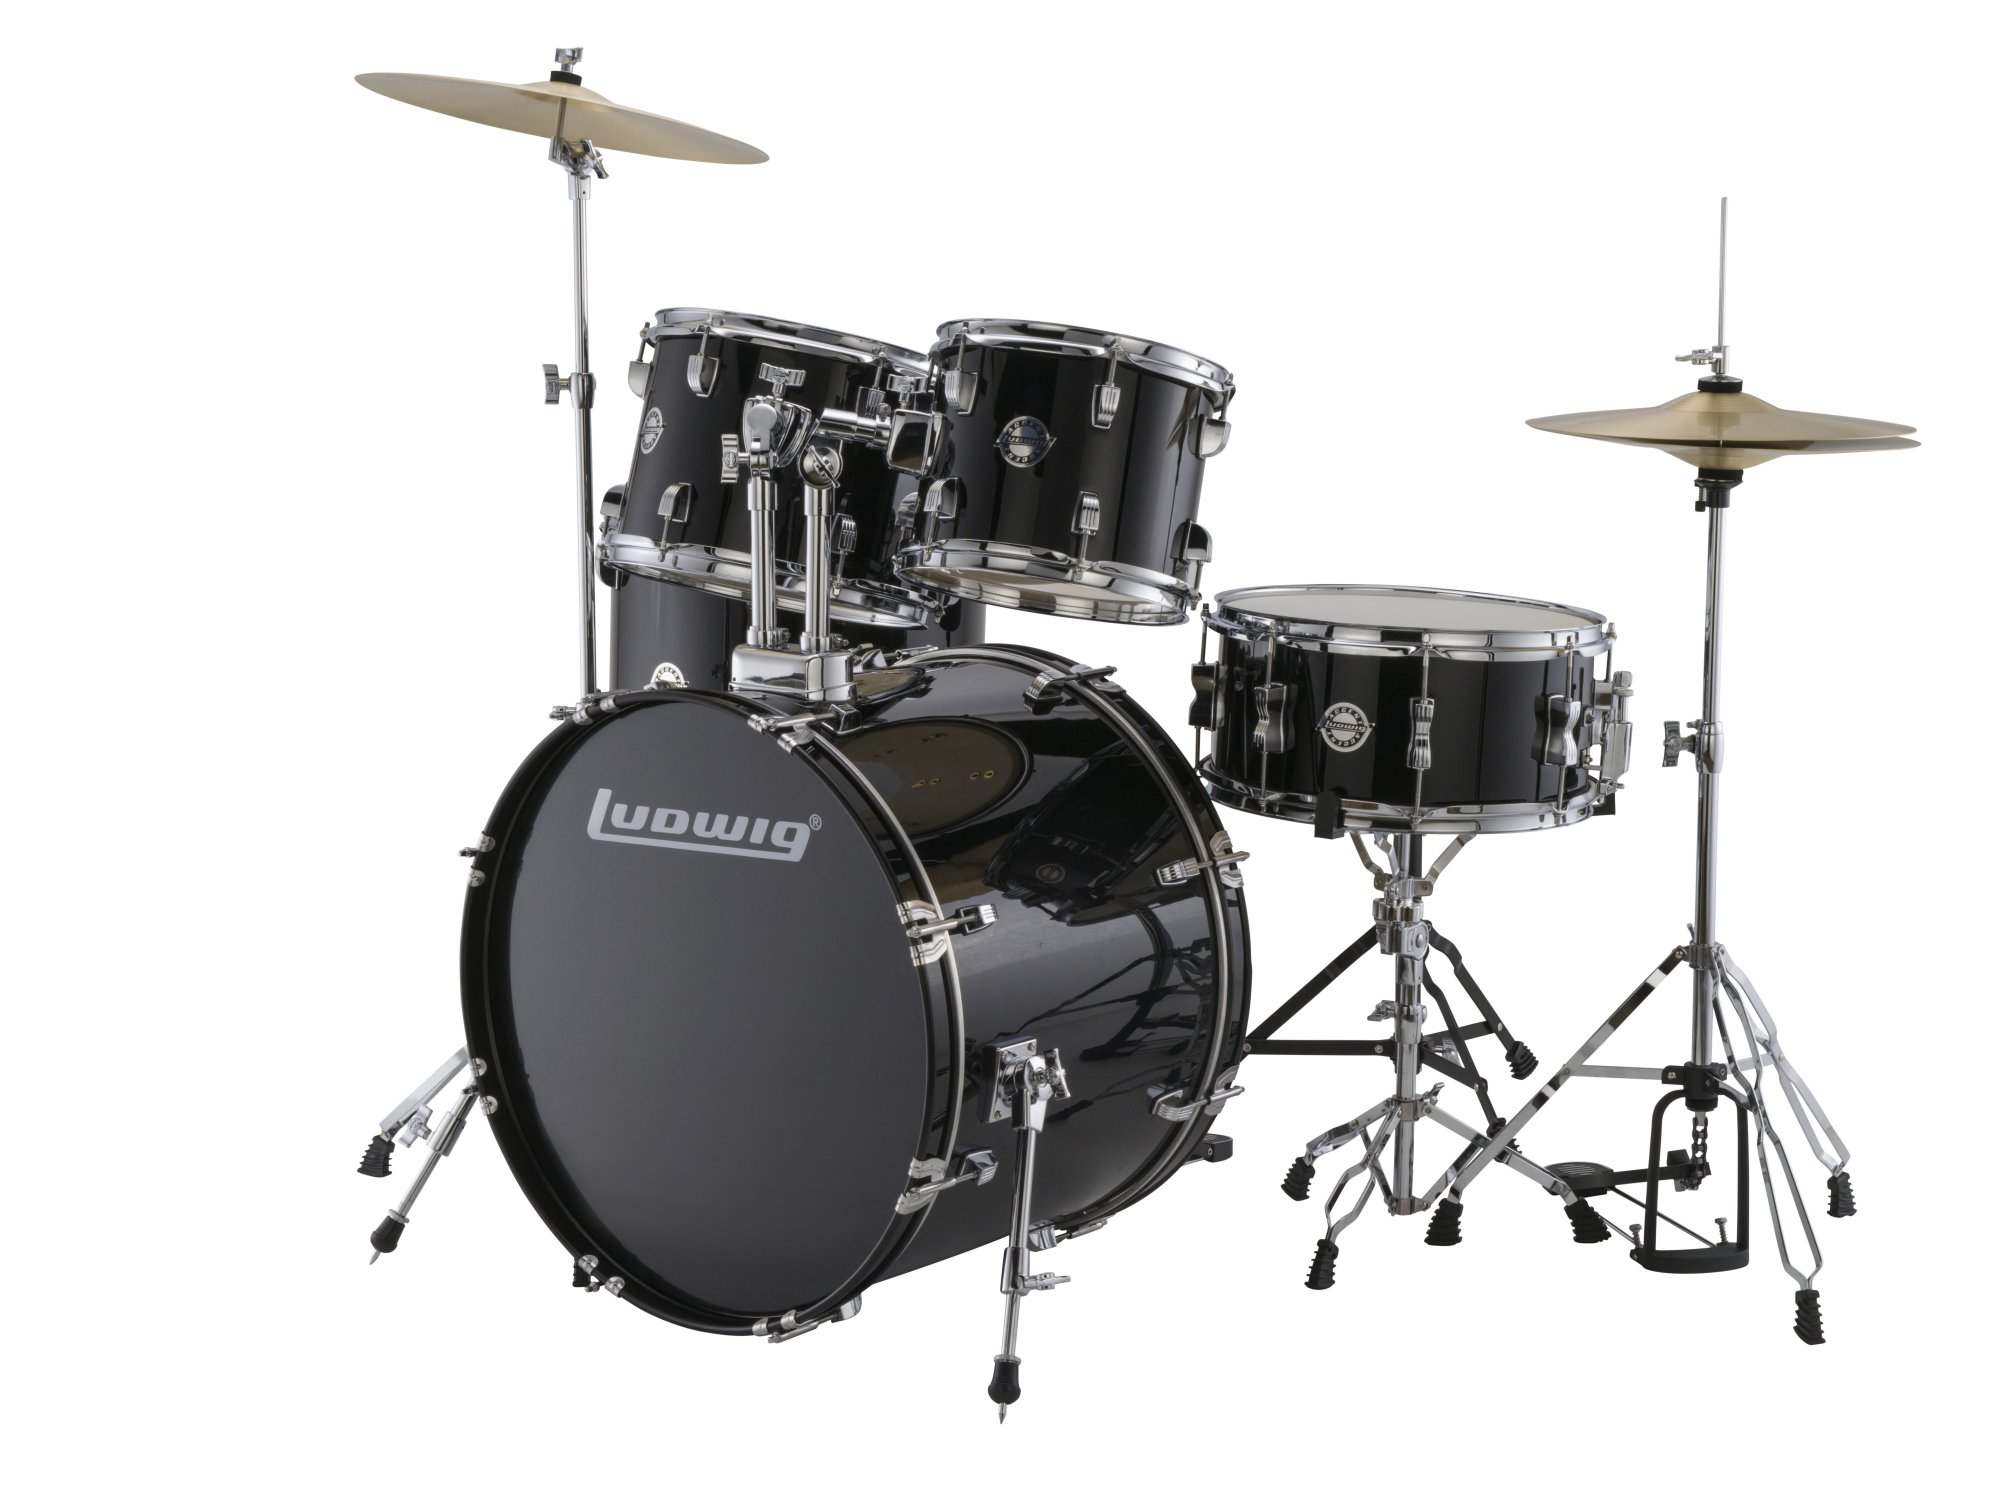 Ludwig LC1701 Accent Fuse 5-Piece Drum Kit w/ Hardware, Cymbals, & Throne - Black